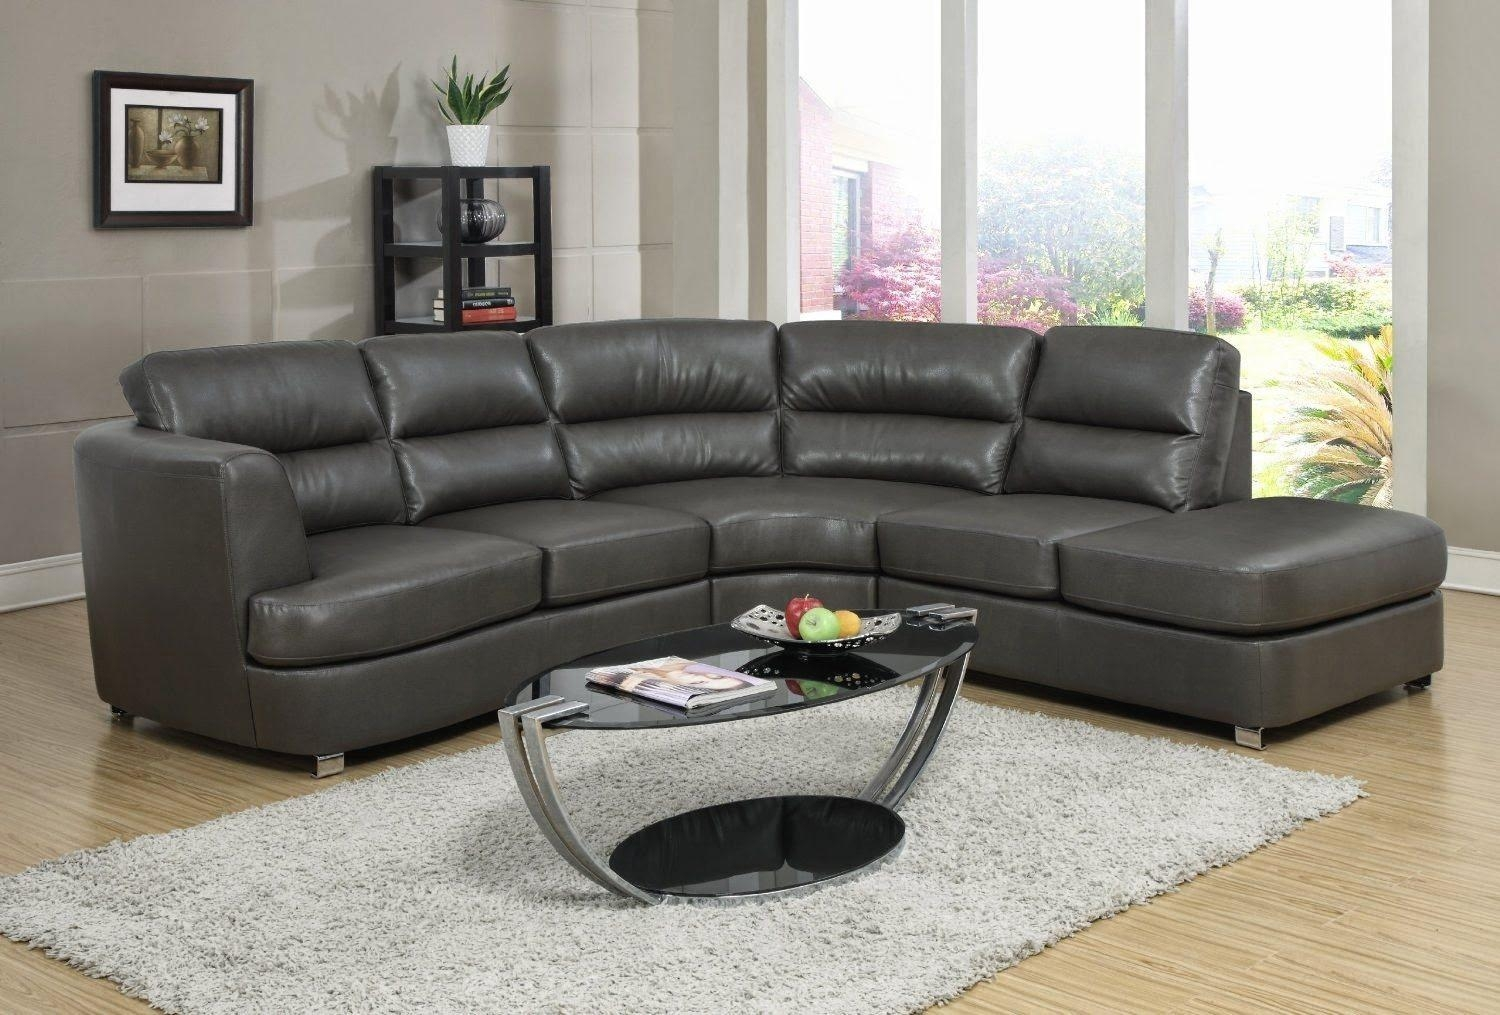 Sofas Center : Charcoal Leather Sofa Grey Sectional Sofacharcoal Inside Charcoal Grey Sofas (Image 17 of 20)